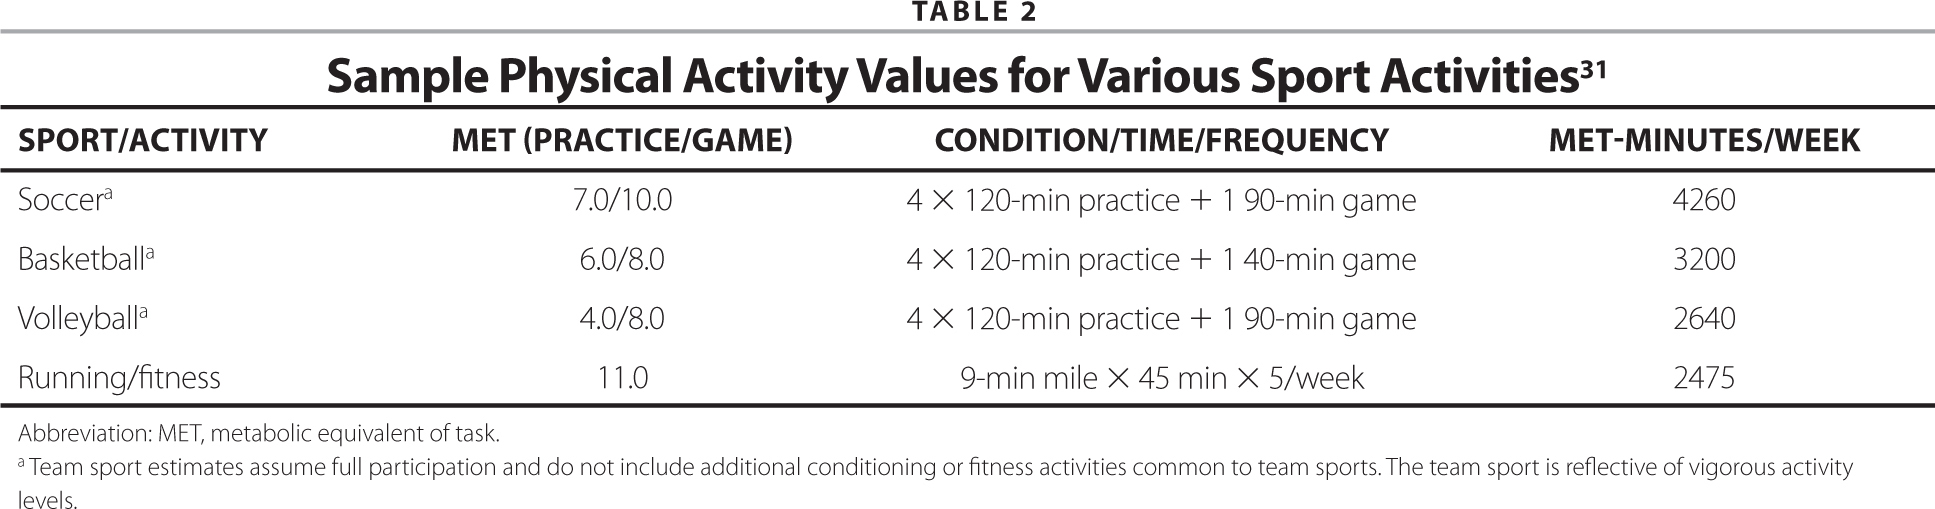 Sample Physical Activity Values for Various Sport Activities31